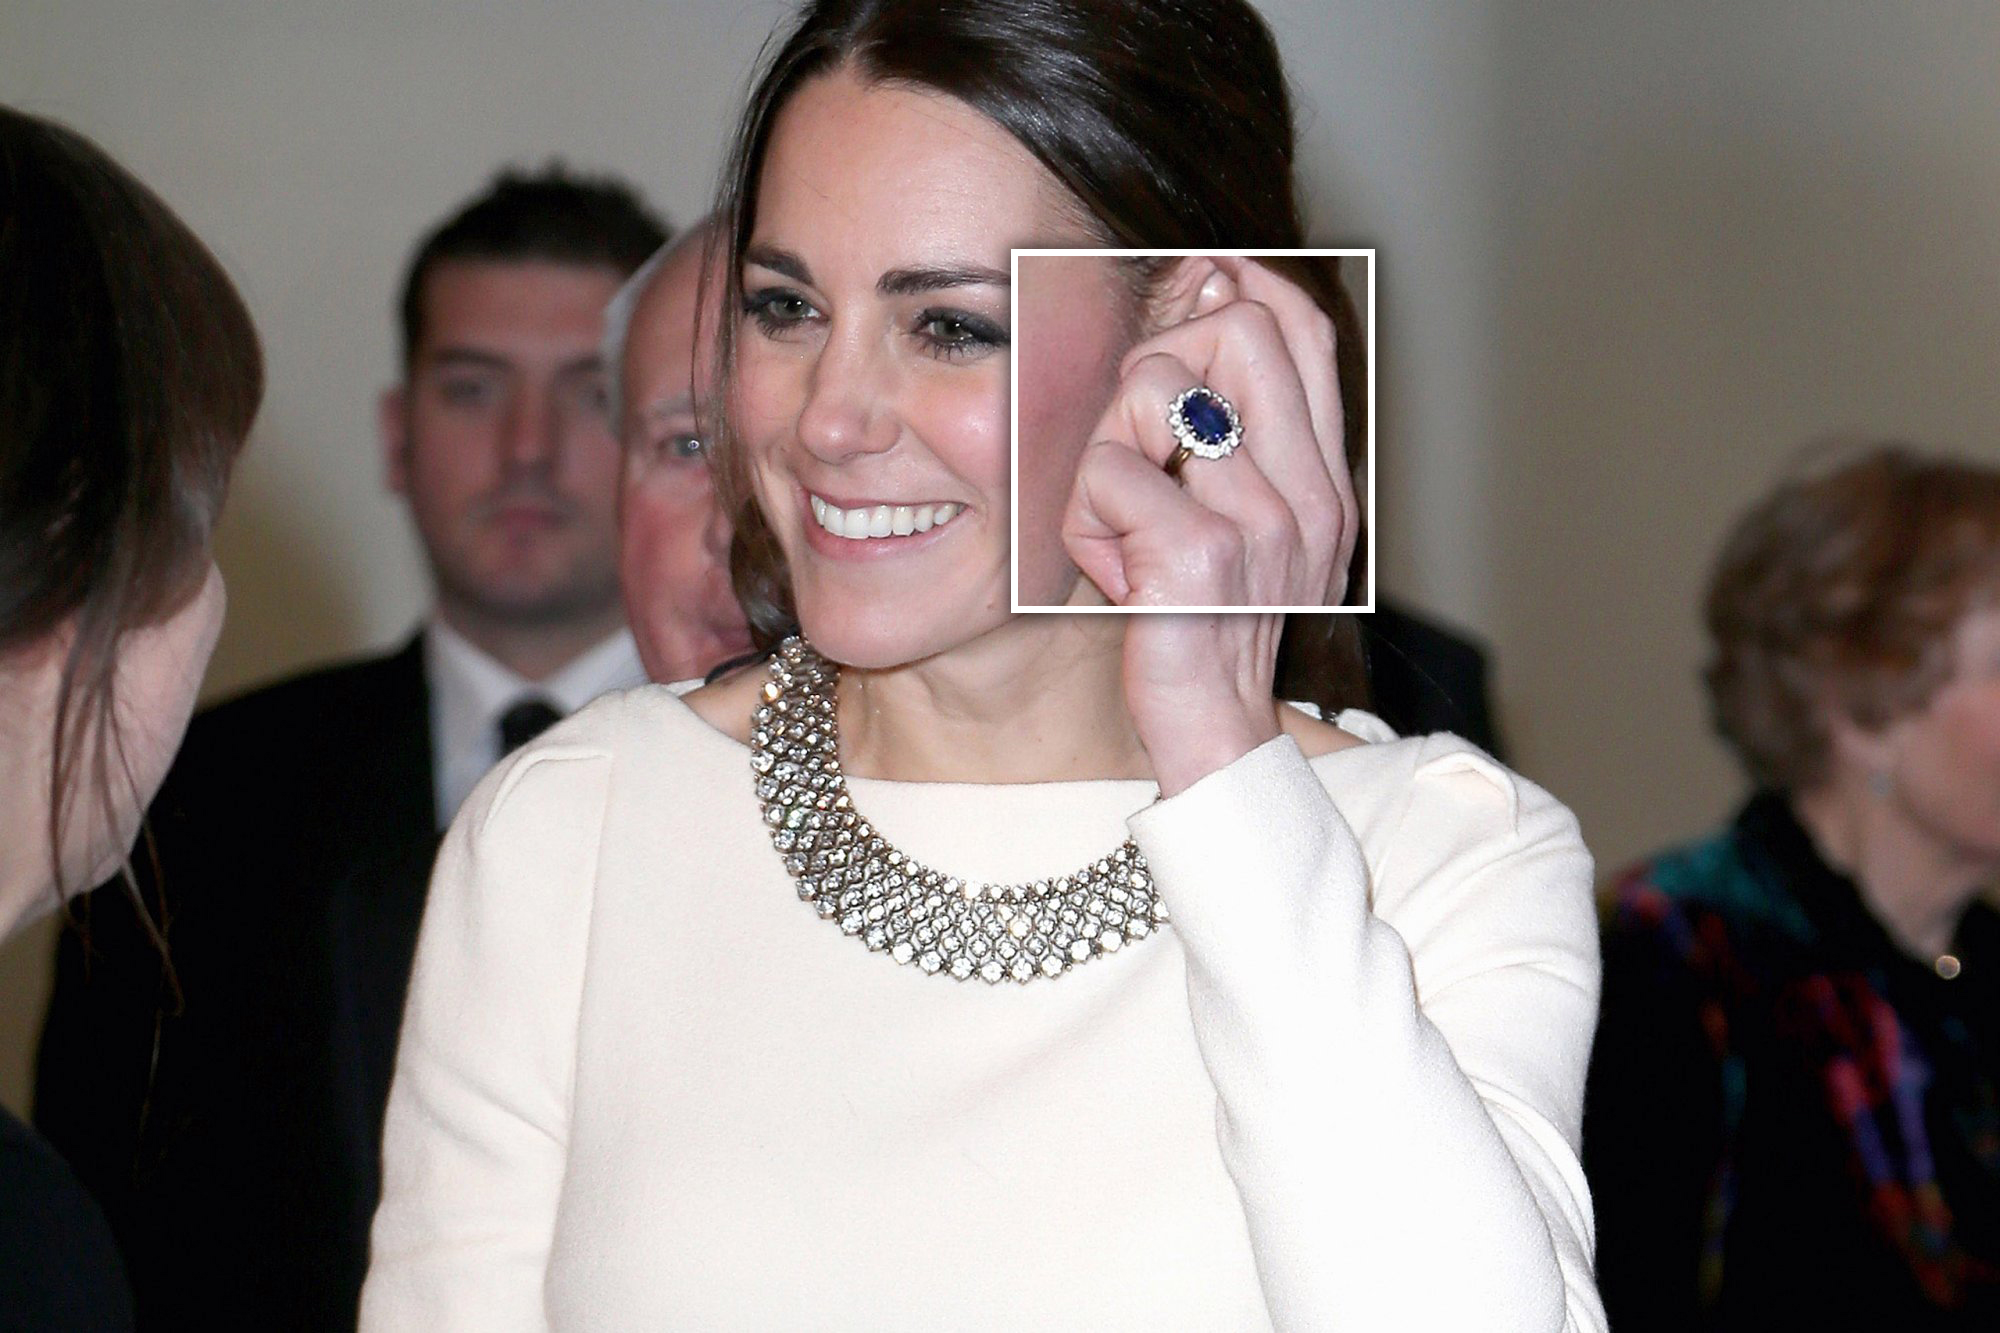 http://www.thedailybeast.com/articles/2014/05/09/kate-middleton-s-engagement-ring-appraisal-gwyneth-palrow-tries-ending-the-mommy-wars.html